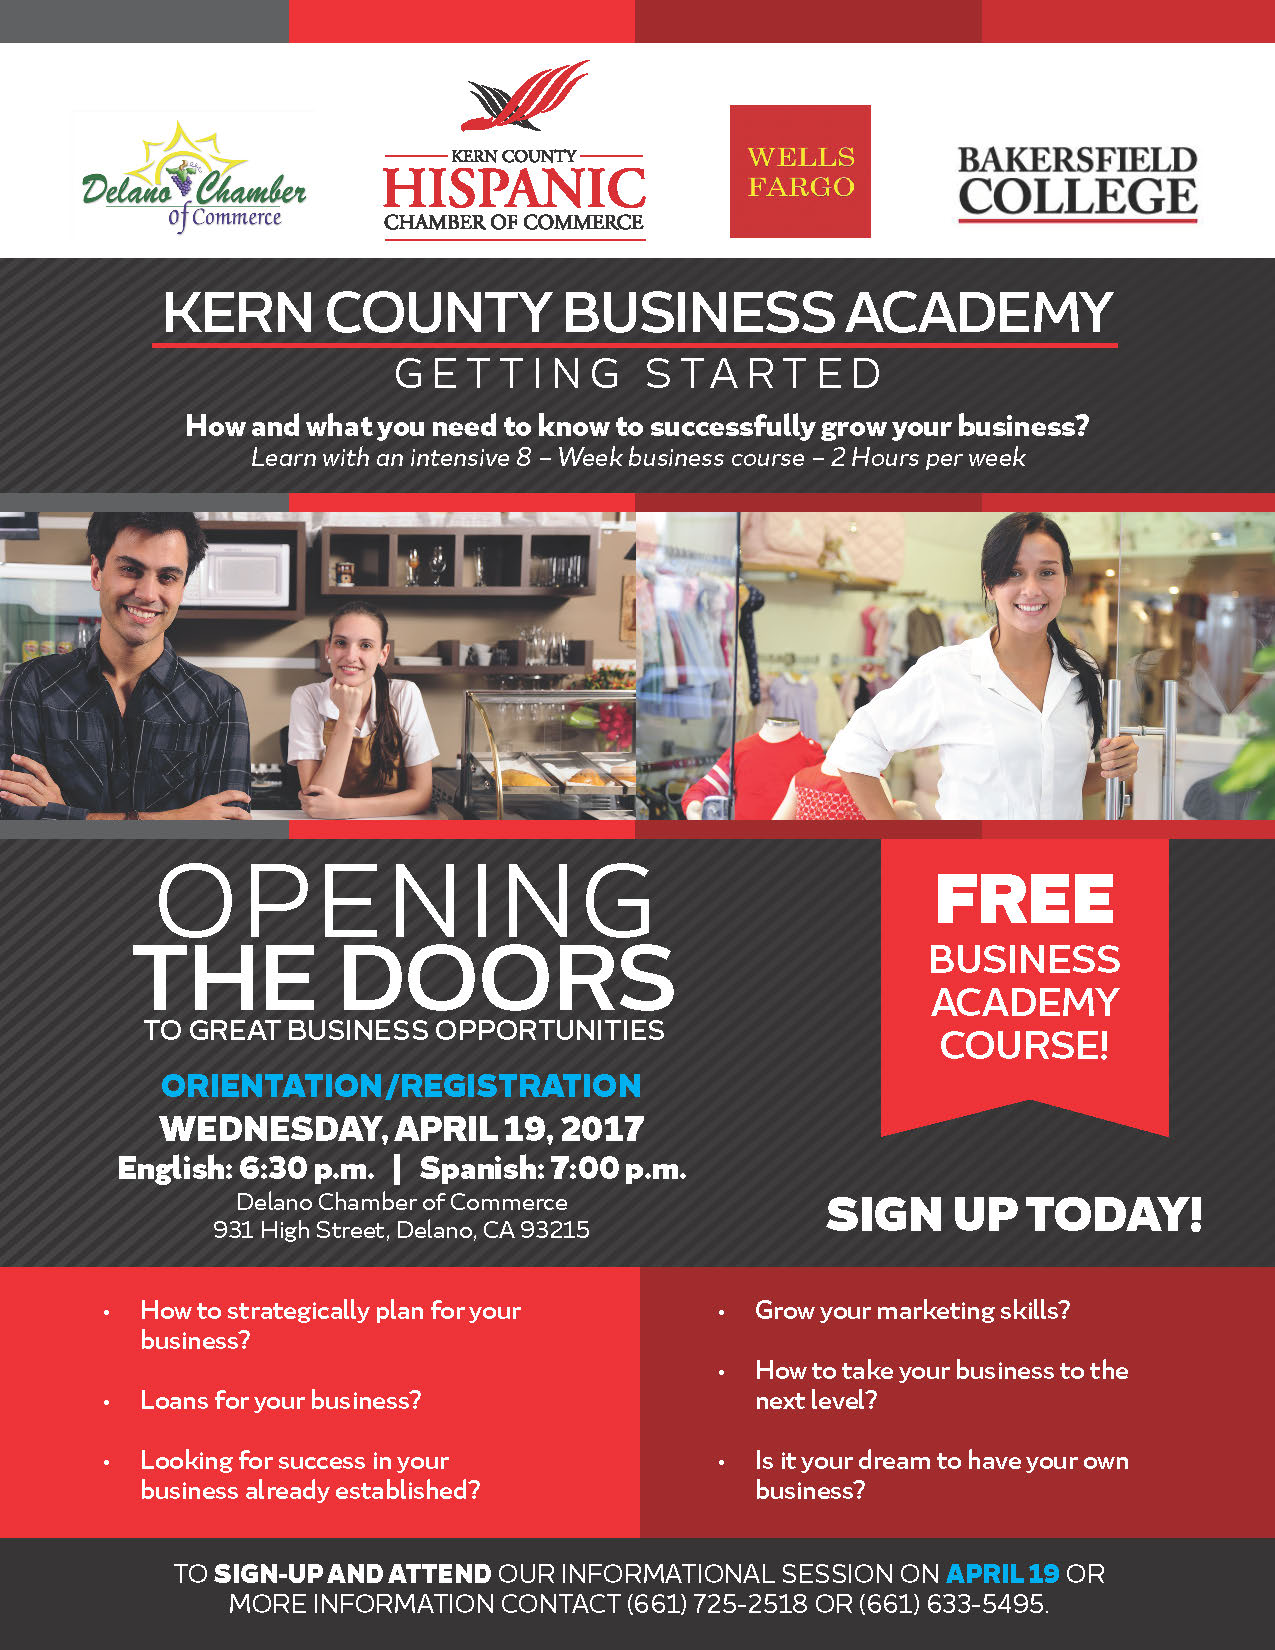 Kern County Business Academy by the Kern County Hispanic Chamber of Commerce